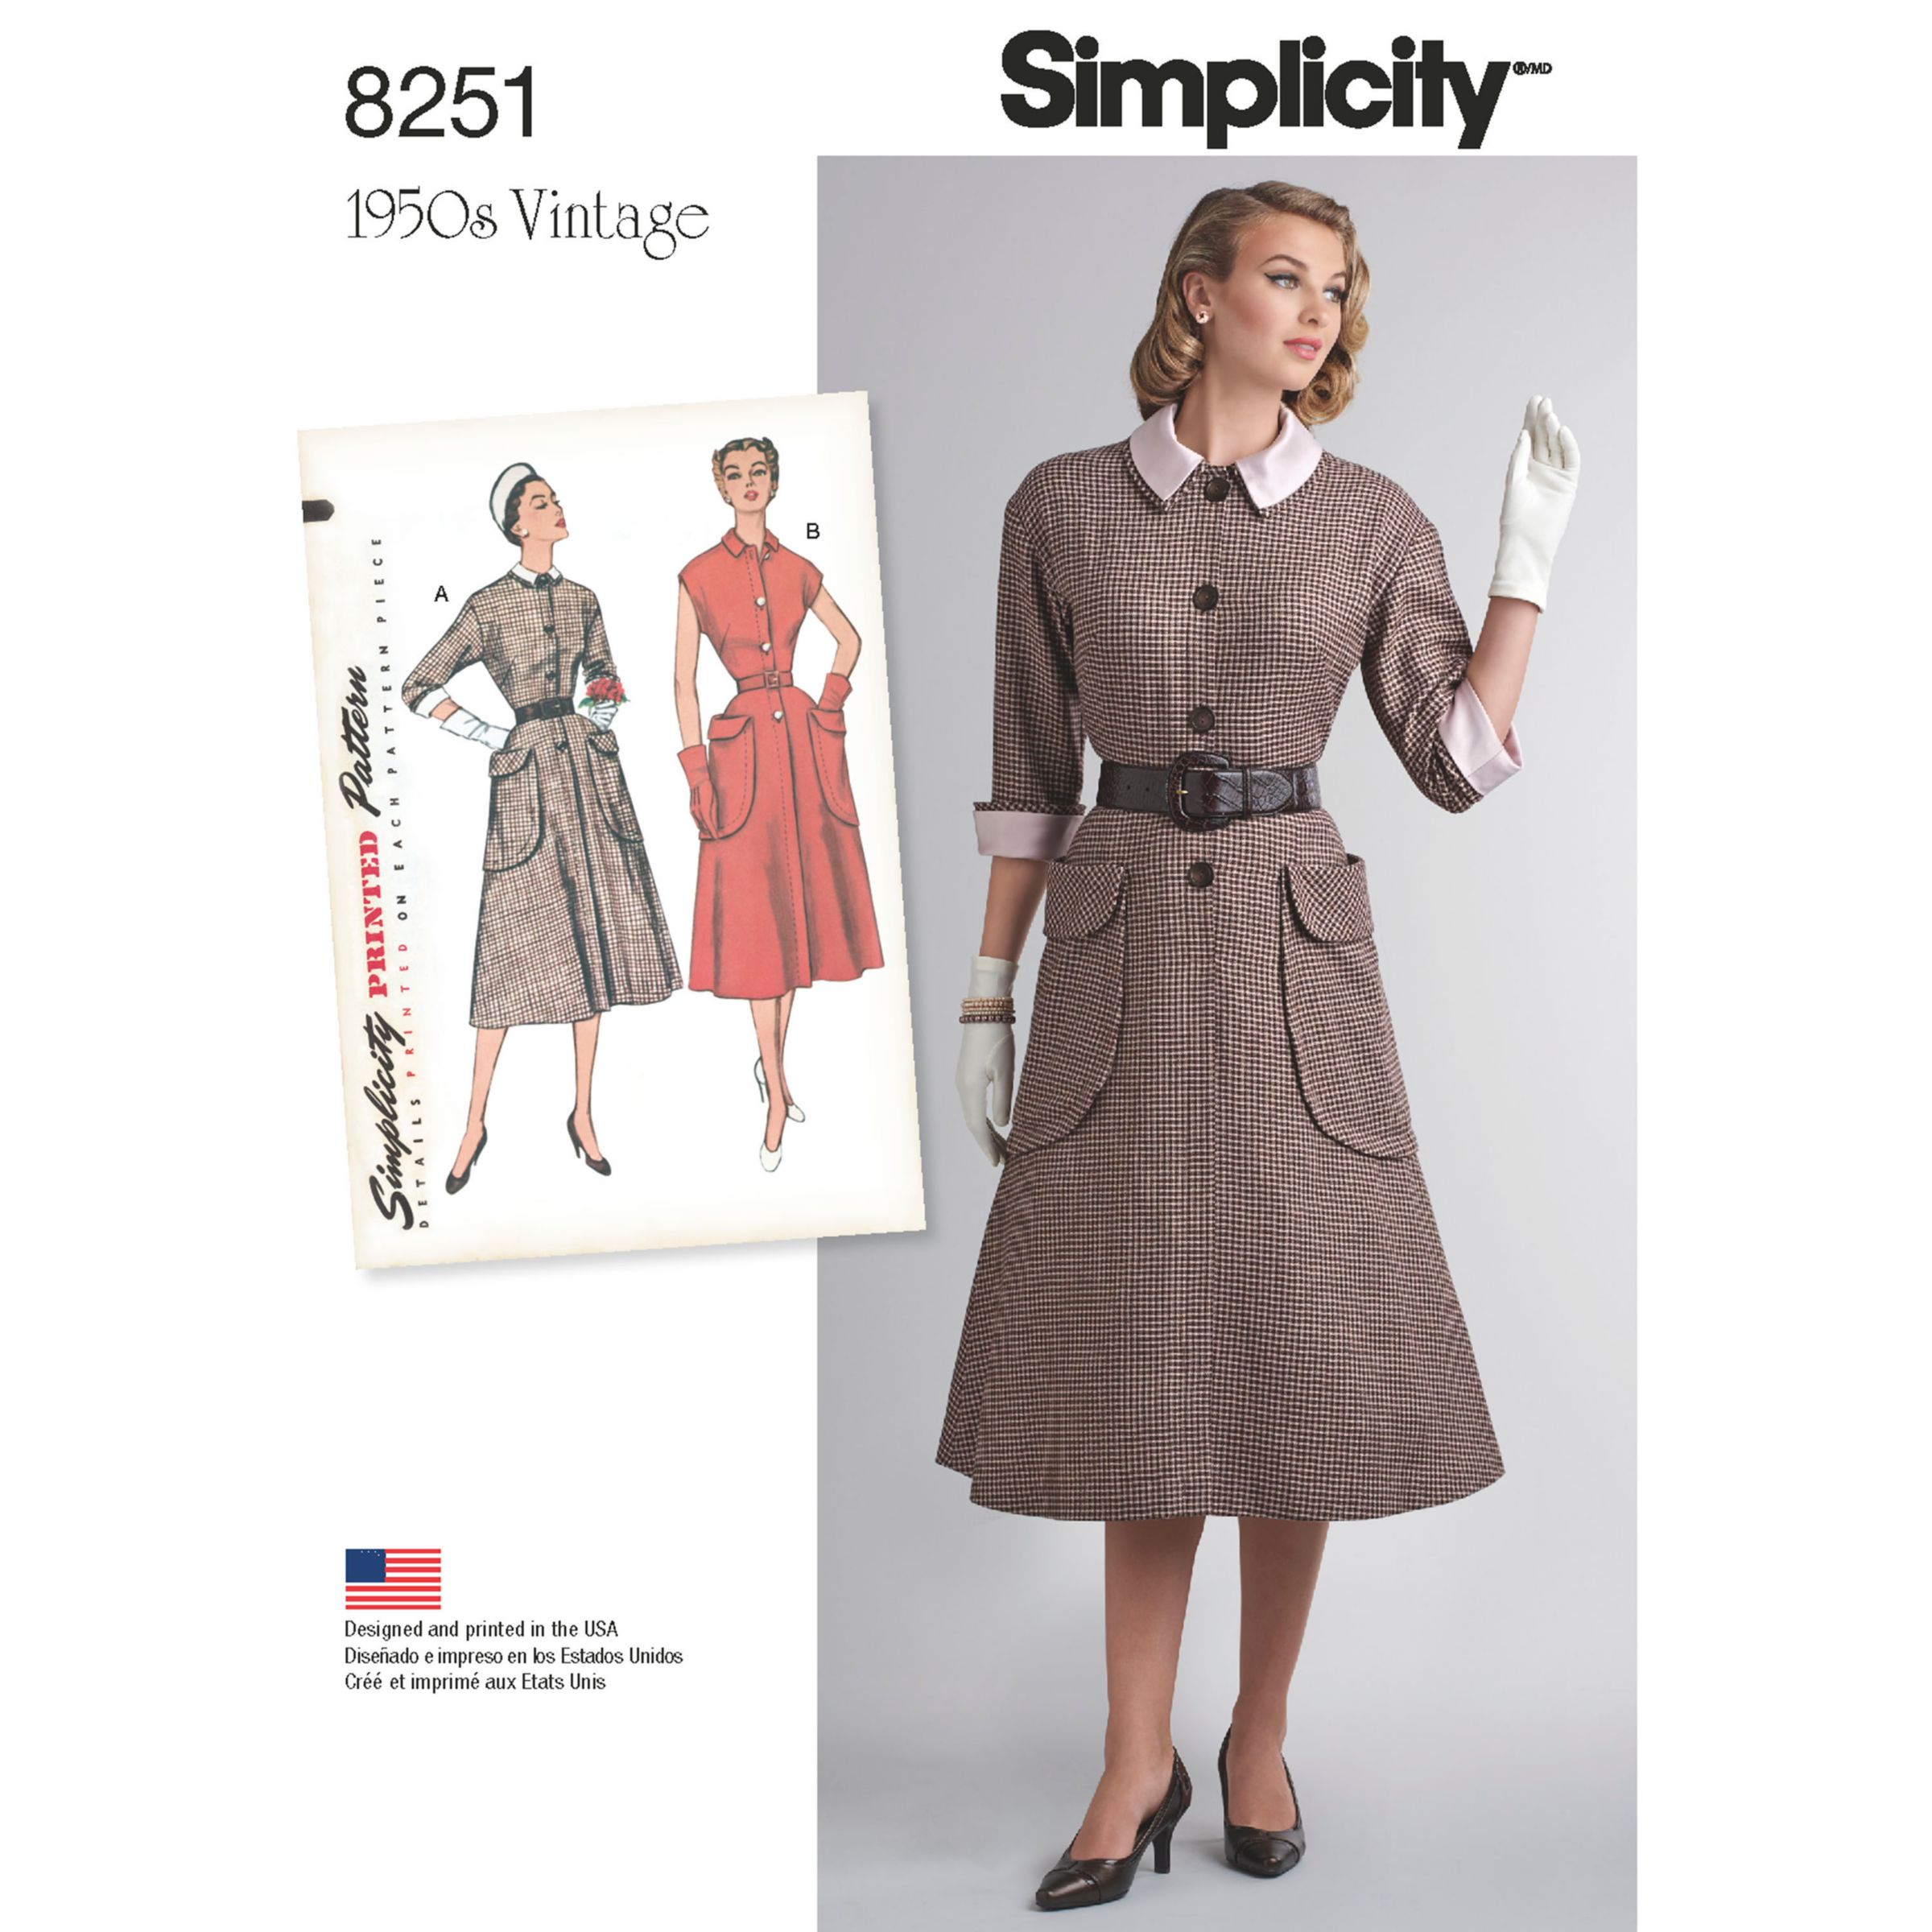 Simplicity Simplicity Vintage Women's 1950s One-Piece Dresses Sewing Pattern, 8251